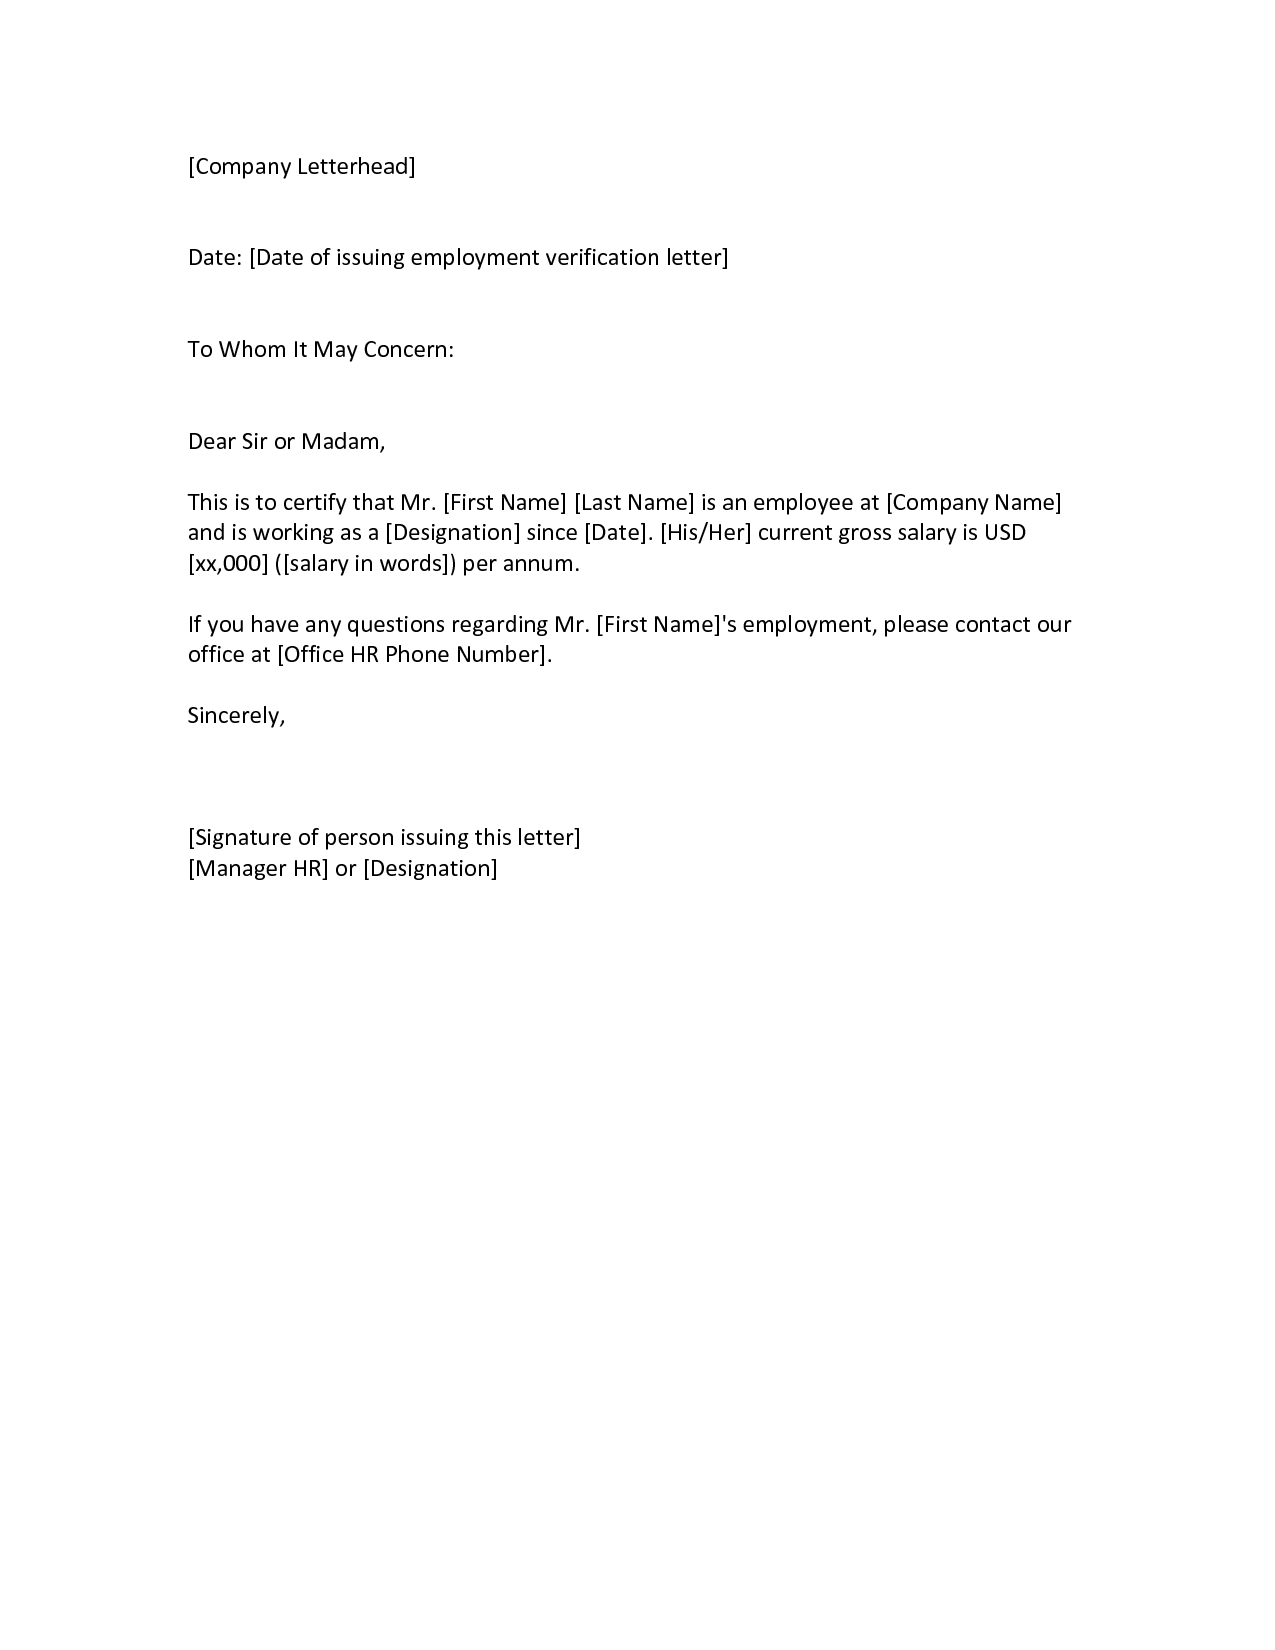 Employment verification letter to whom it may concern template employment verification letter to whom it may concern template spiritdancerdesigns